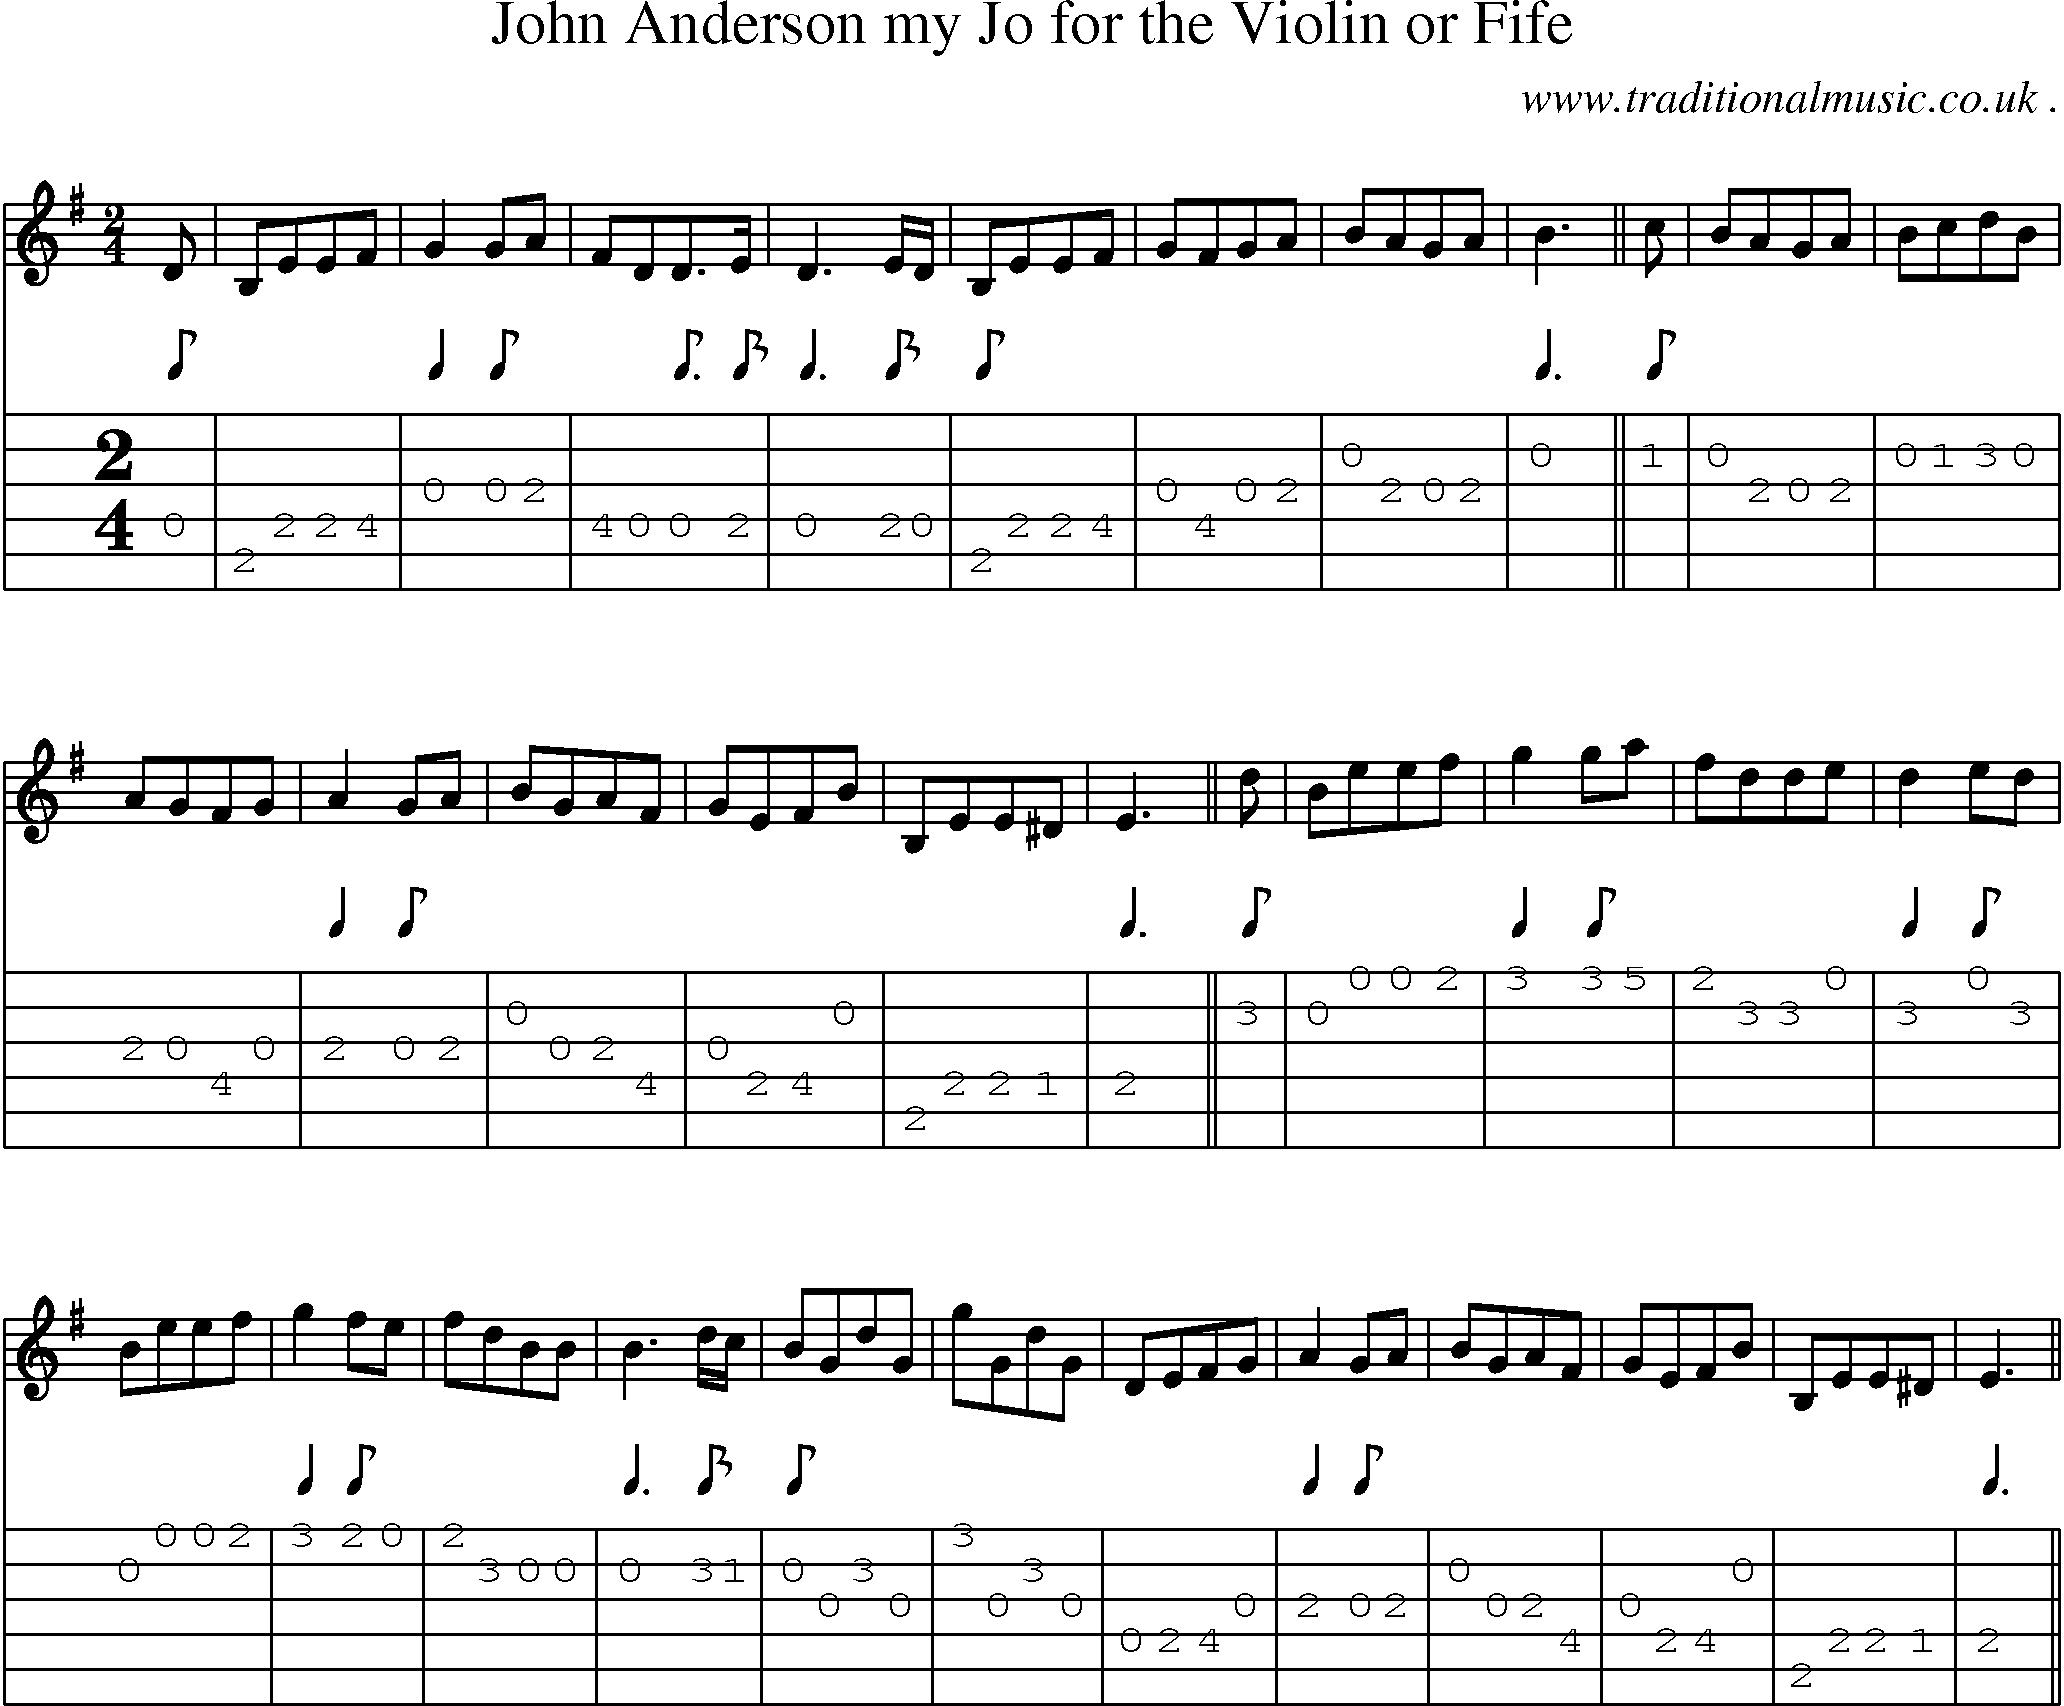 Folk and Traditional Music, Sheet-Music, Guitar tab, mp3 audio, midi and PDF for: John Anderson ...